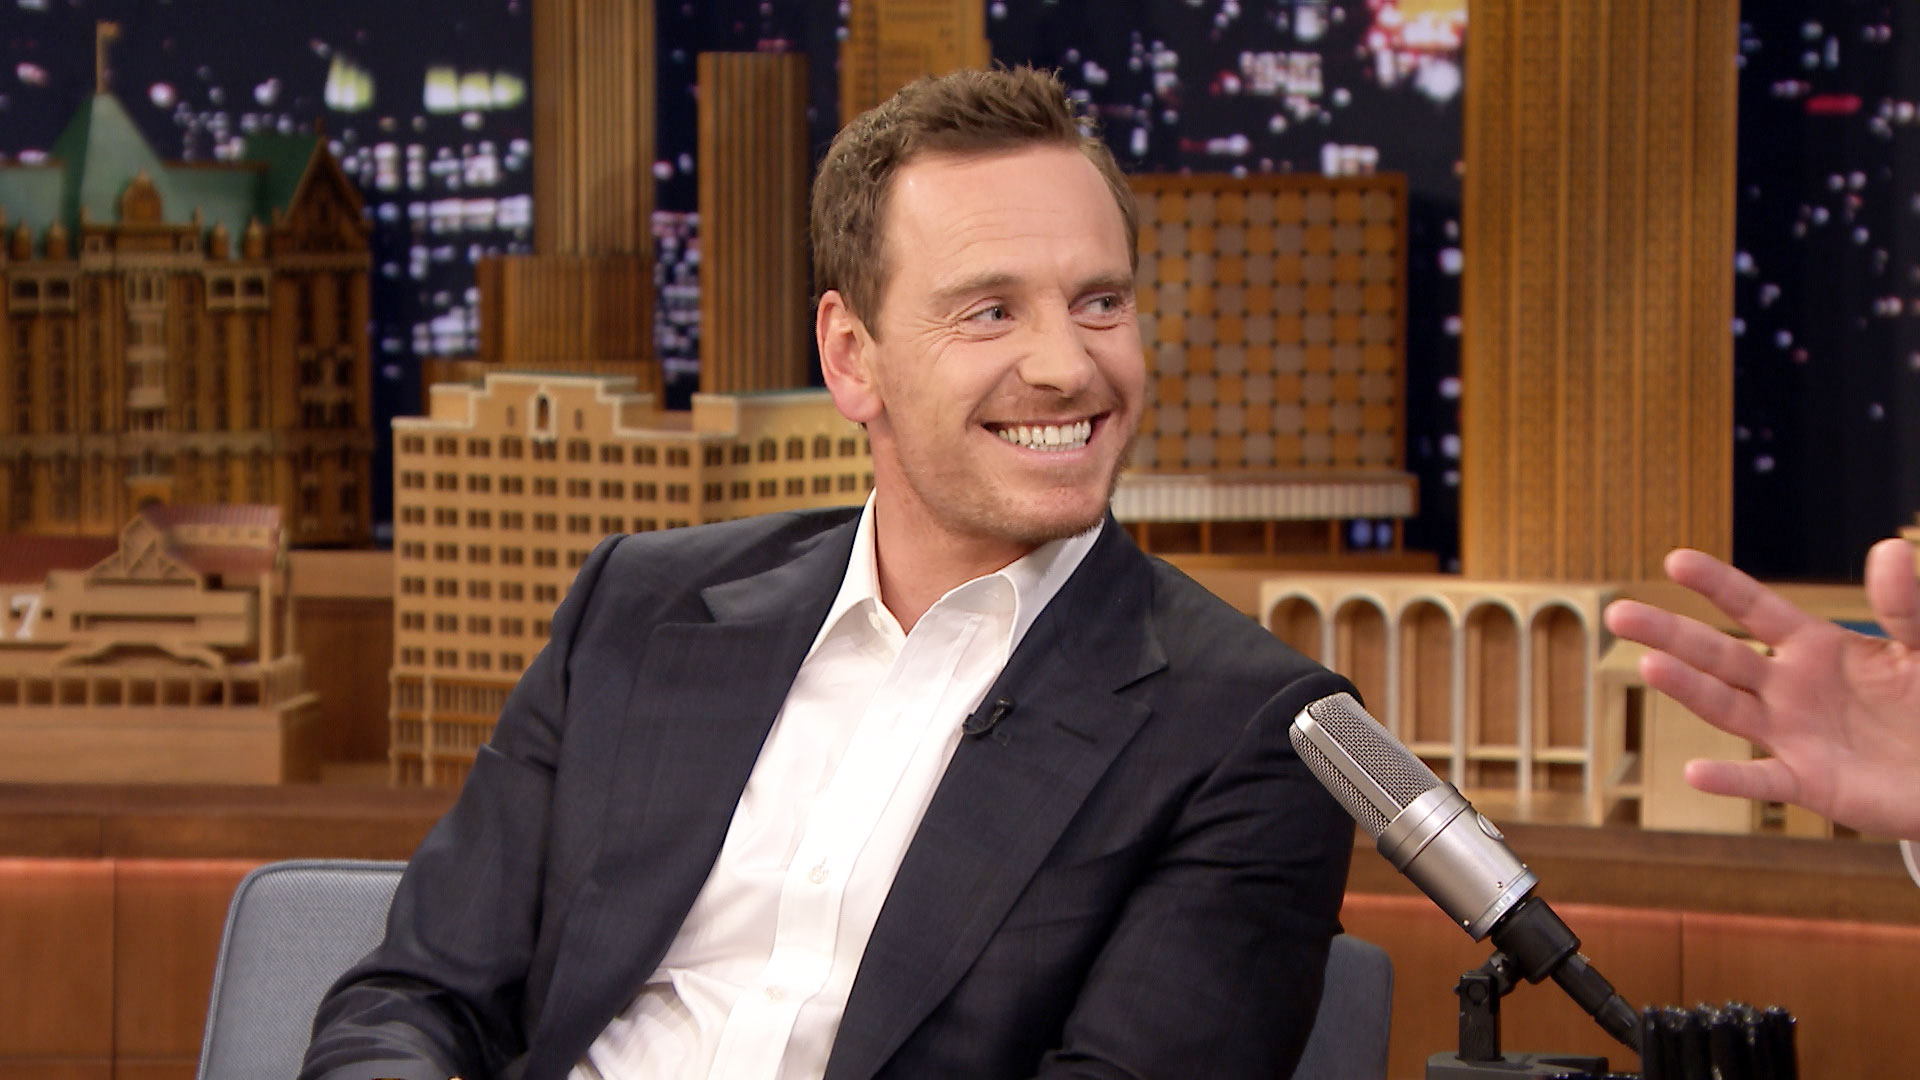 Michael Fassbender Wants a Slide from His Bedroom to the Bathtub